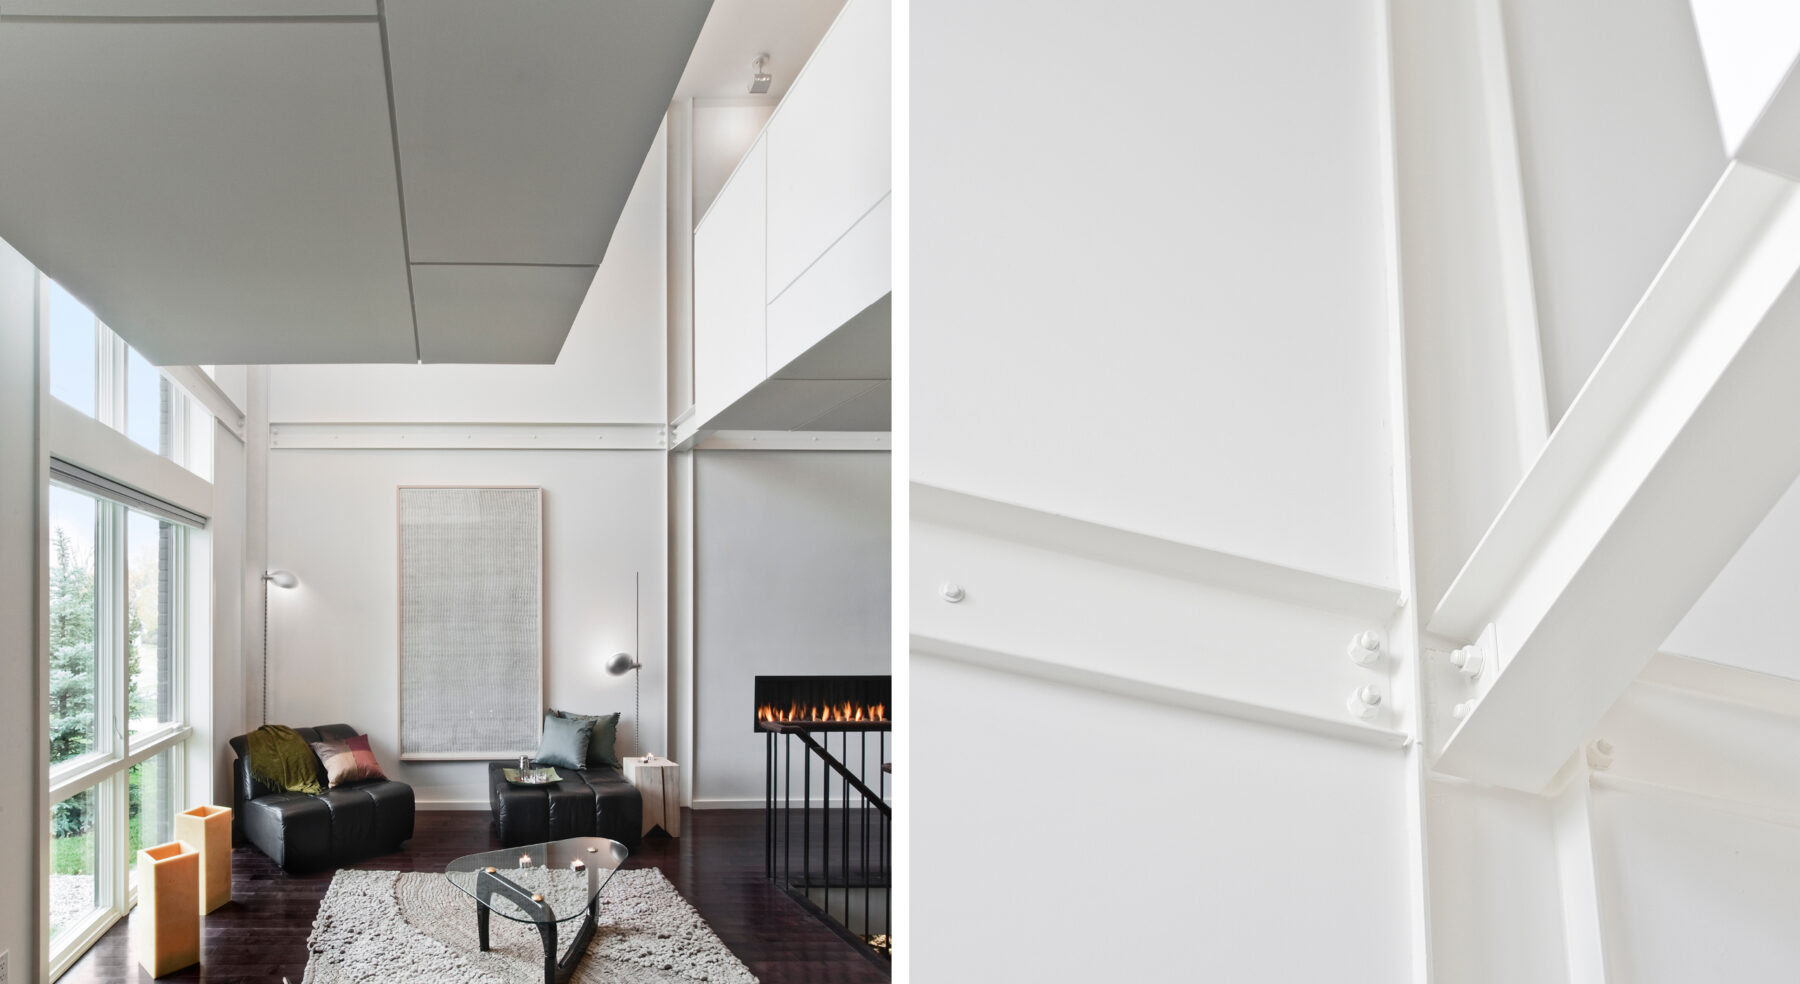 Split view of Echo House living area and details